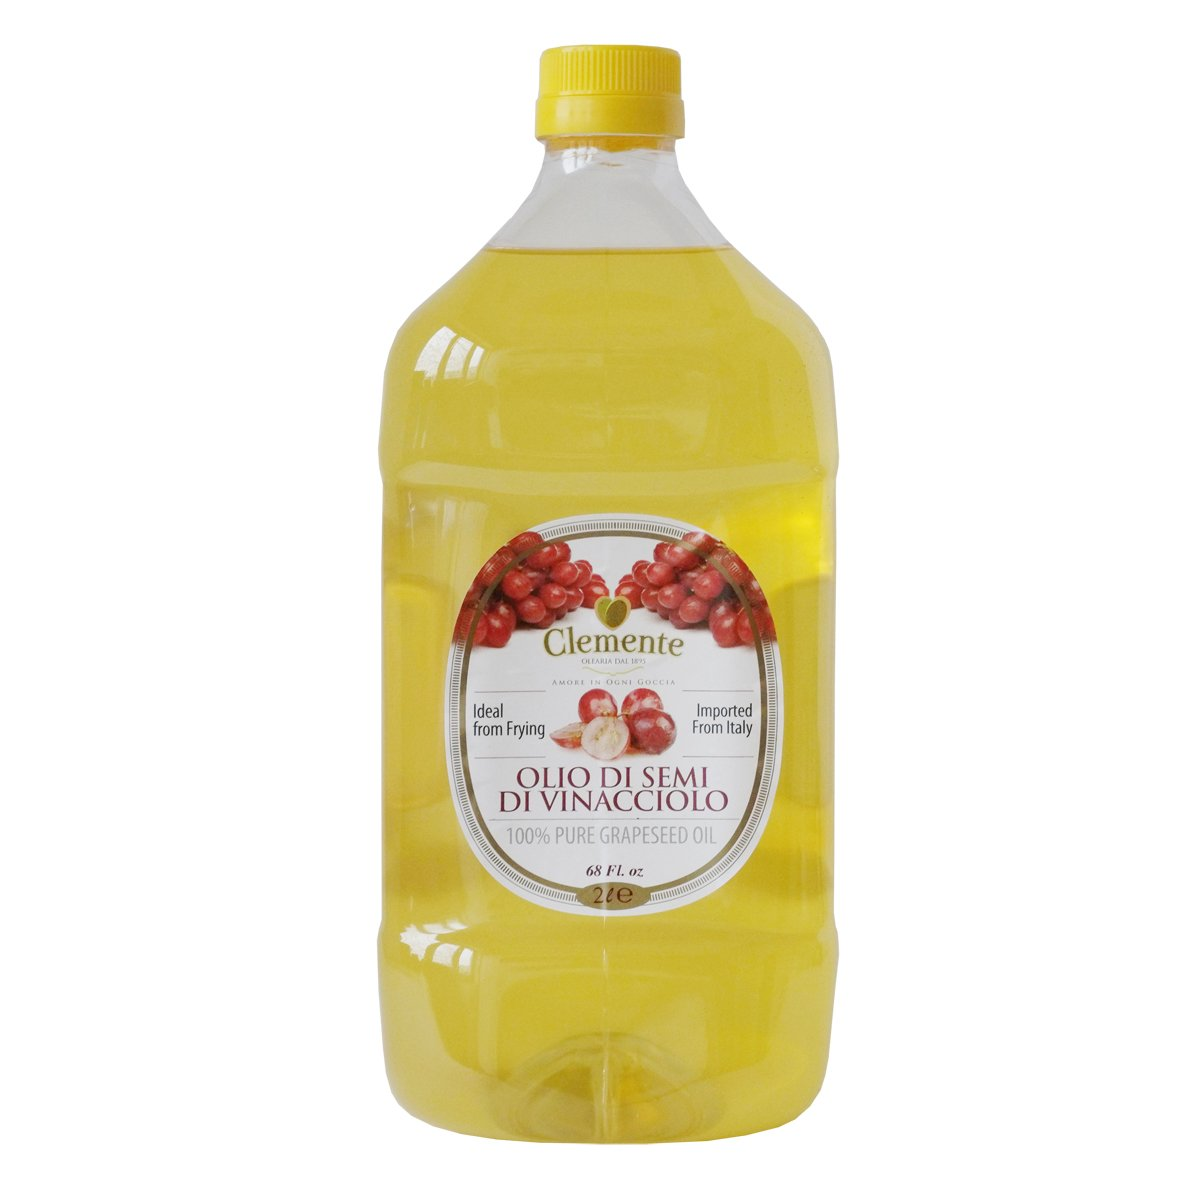 Clemente Italian 100% Pure Grapeseed Oil 68 fl oz by Clemente